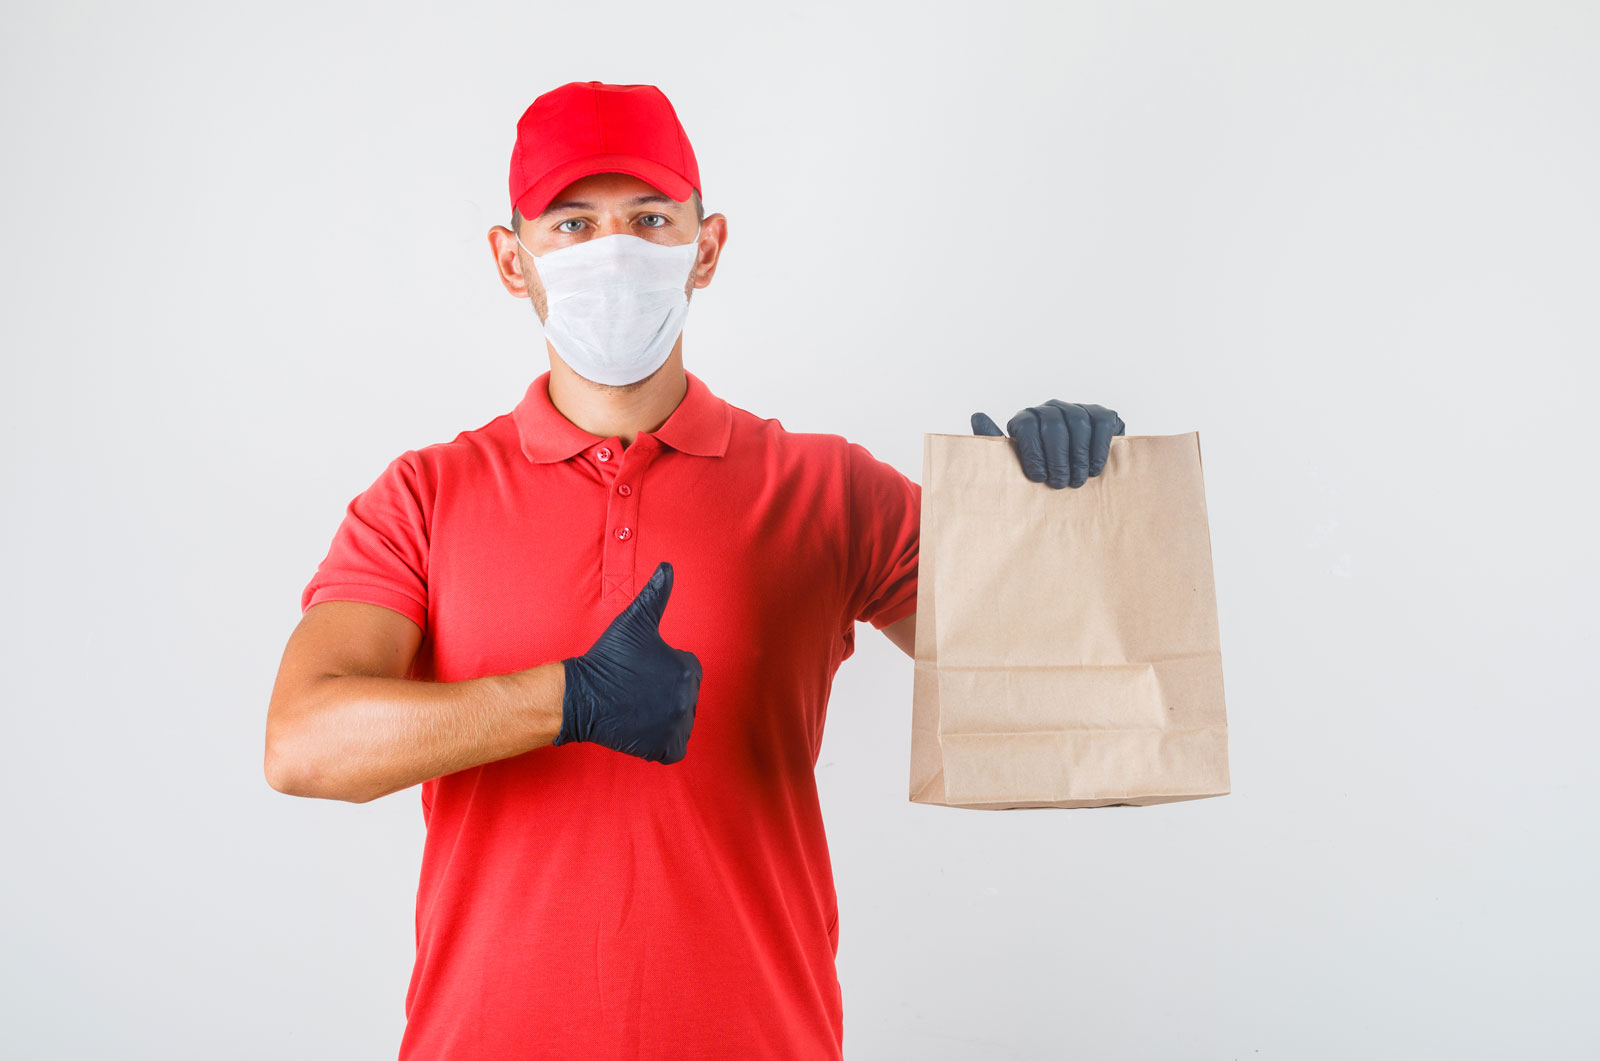 Delivery man holding paper bag and showing thumb up in red unifo